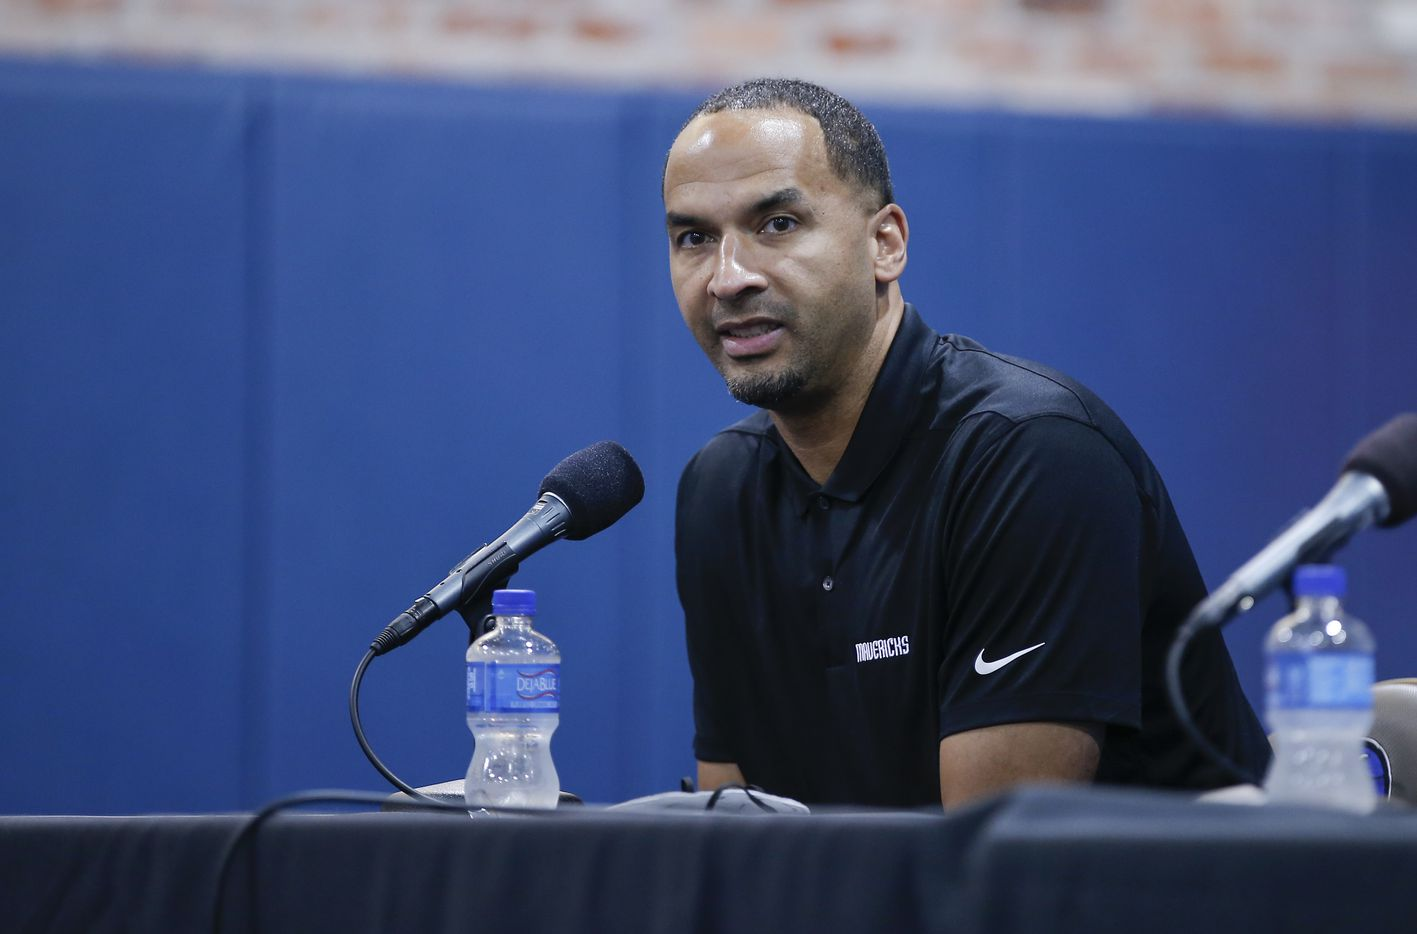 Dallas Mavericks General Manager  Nico Harrison speaks during a press conference in Dallas, Friday, August 27, 2021. (Brandon Wade/Special Contributor)